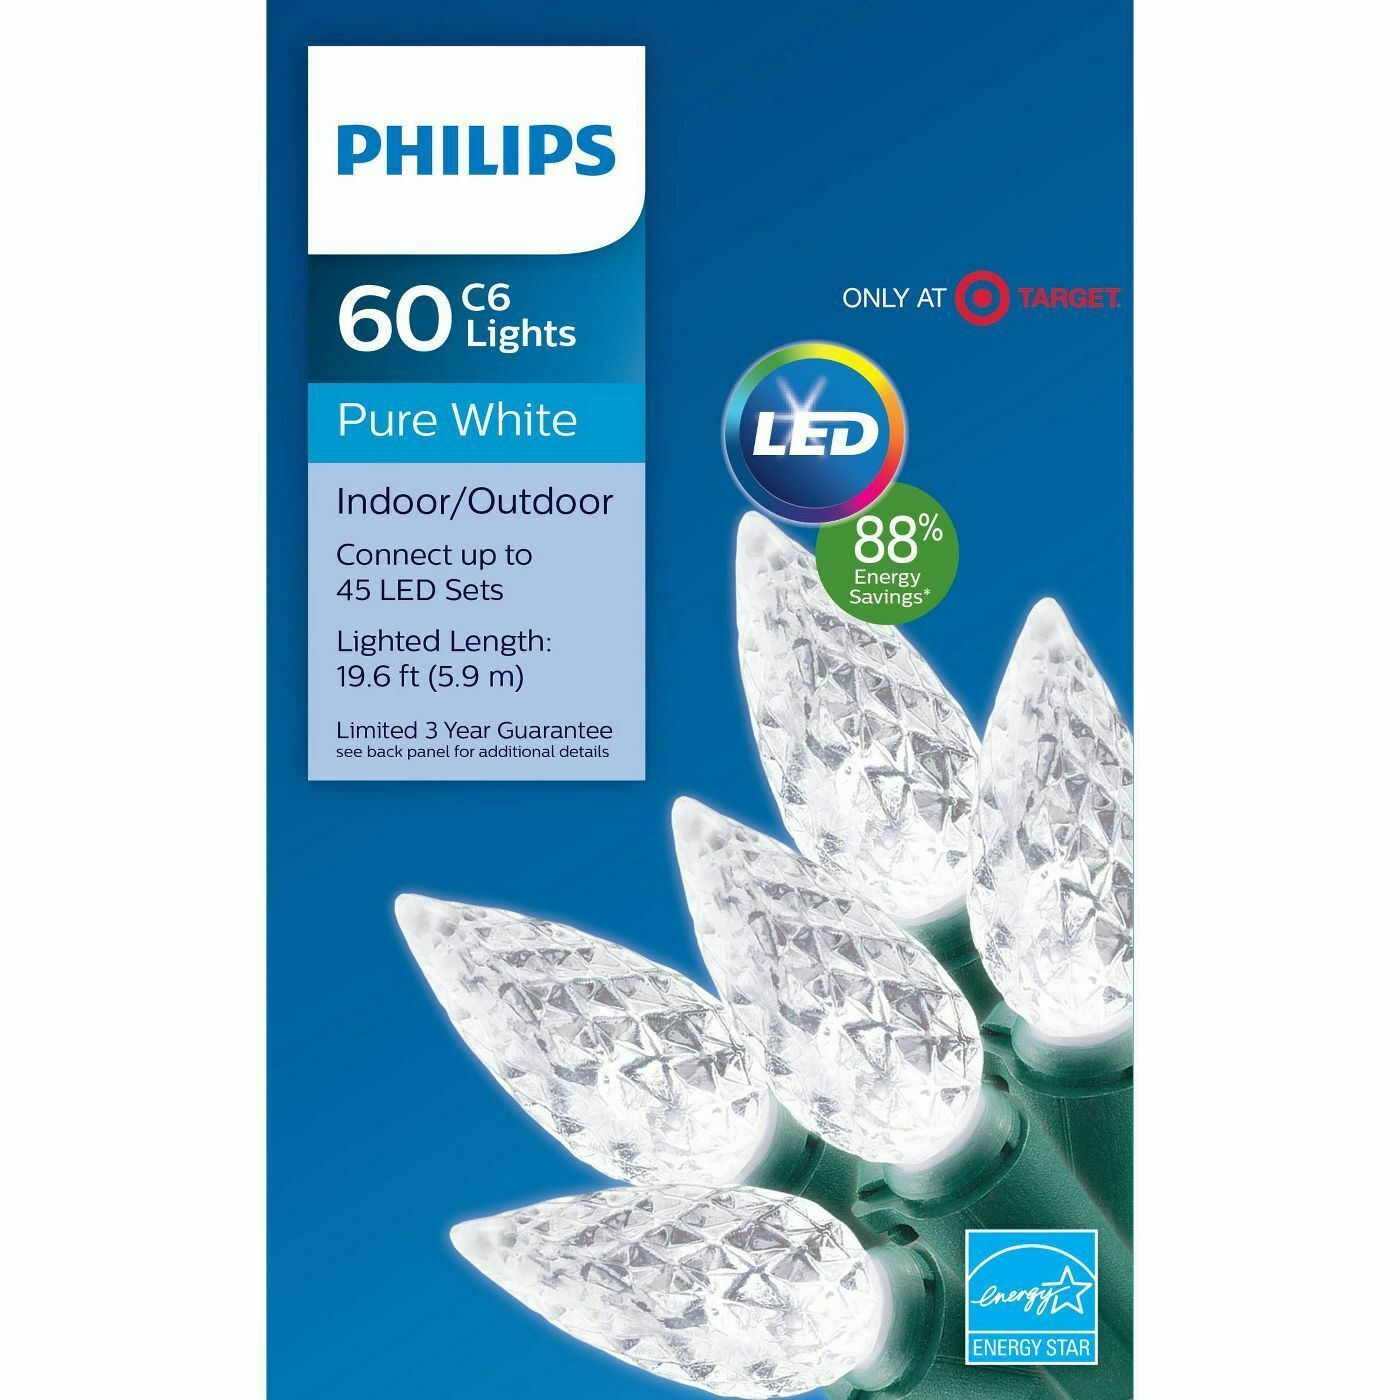 Philips 60ct In-/Outdoor Christmas LED C6 Faceted String Lights Pure White NEW